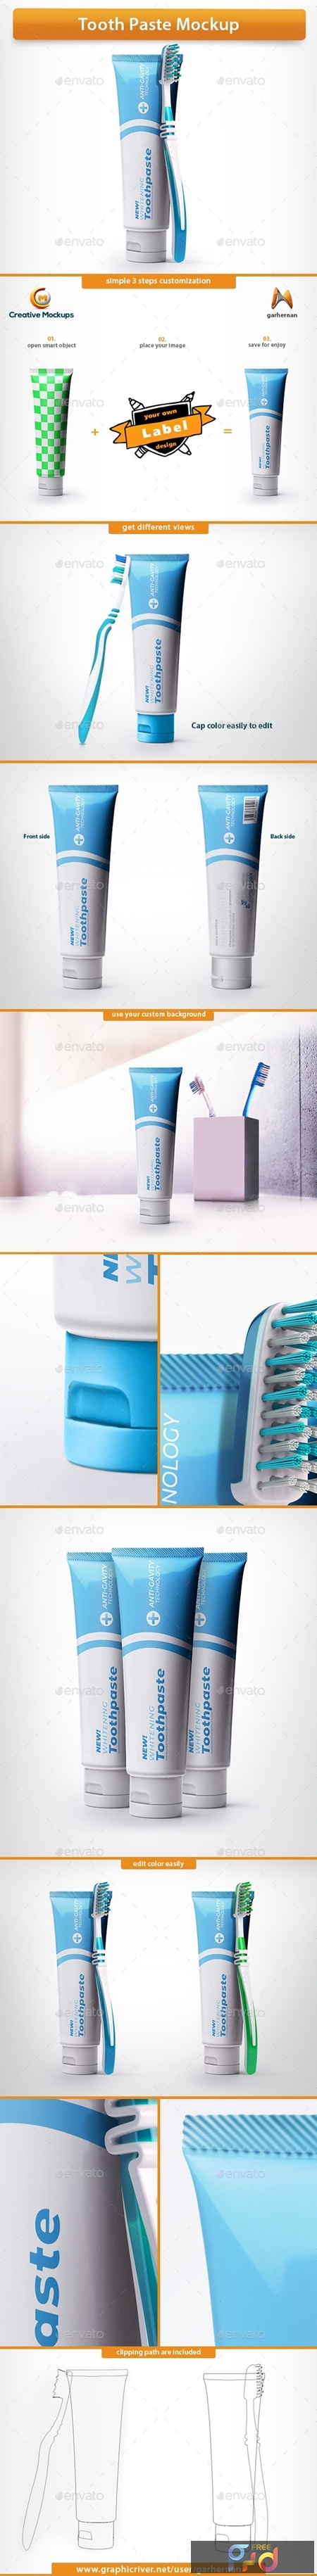 Tooth Paste Psd Mockup 25647243 1